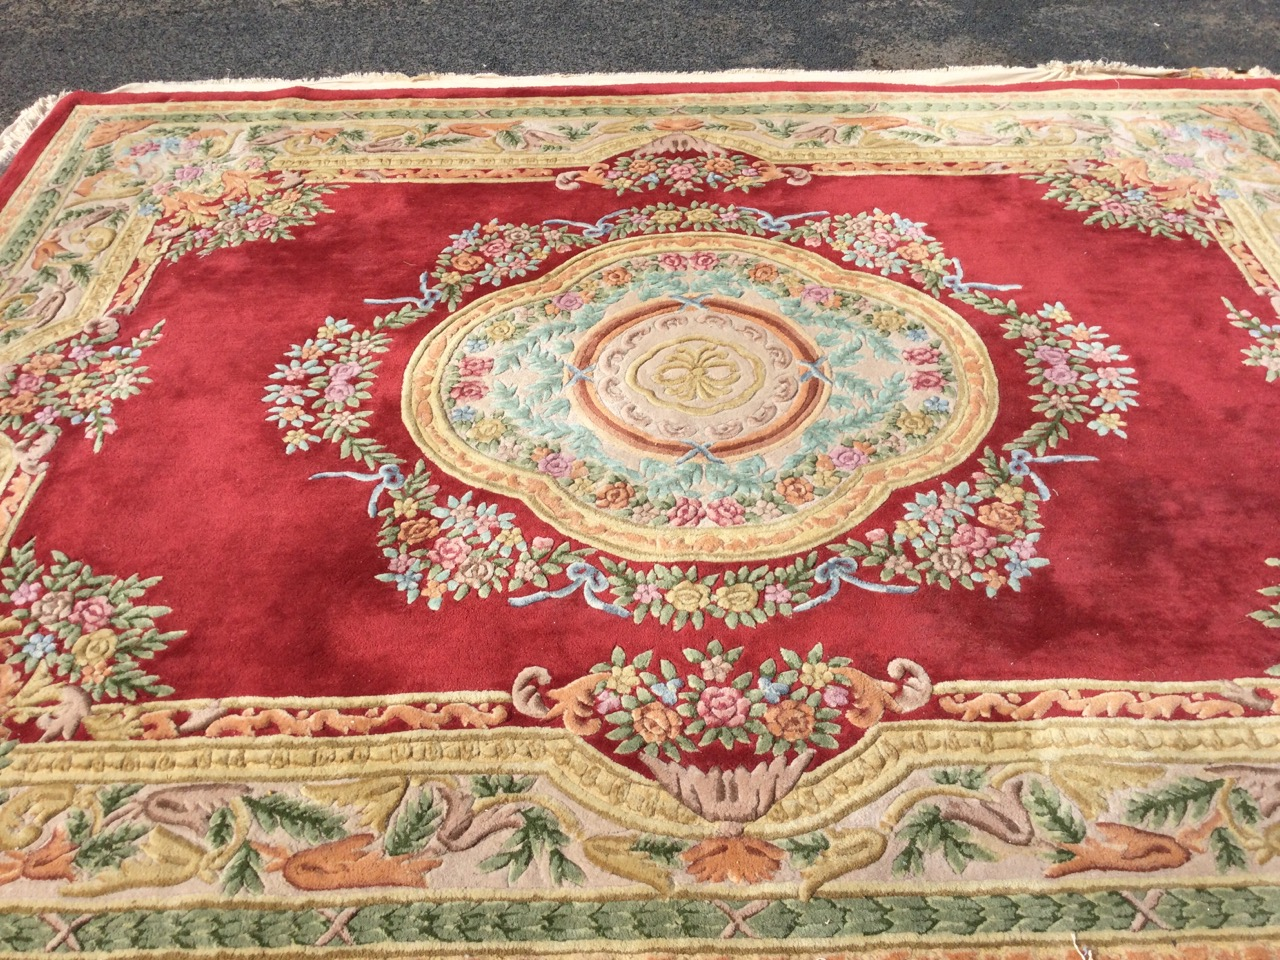 A Chinese thick-pile floral carpet woven with central scalloped medallion framed by ribbon - Image 2 of 3